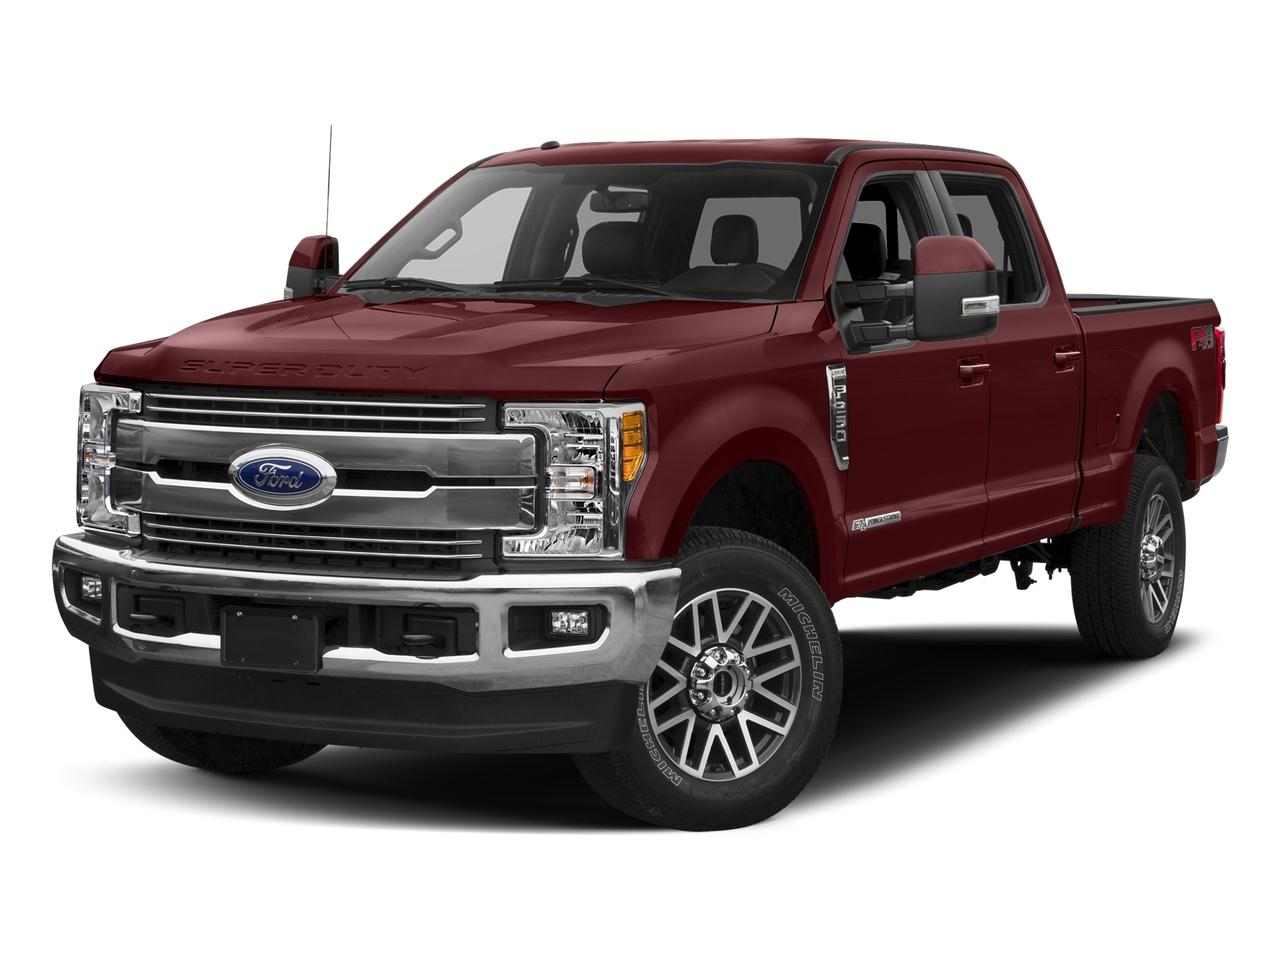 2017 Ford Super Duty F-350 SRW Vehicle Photo in Tallahassee, FL 32308